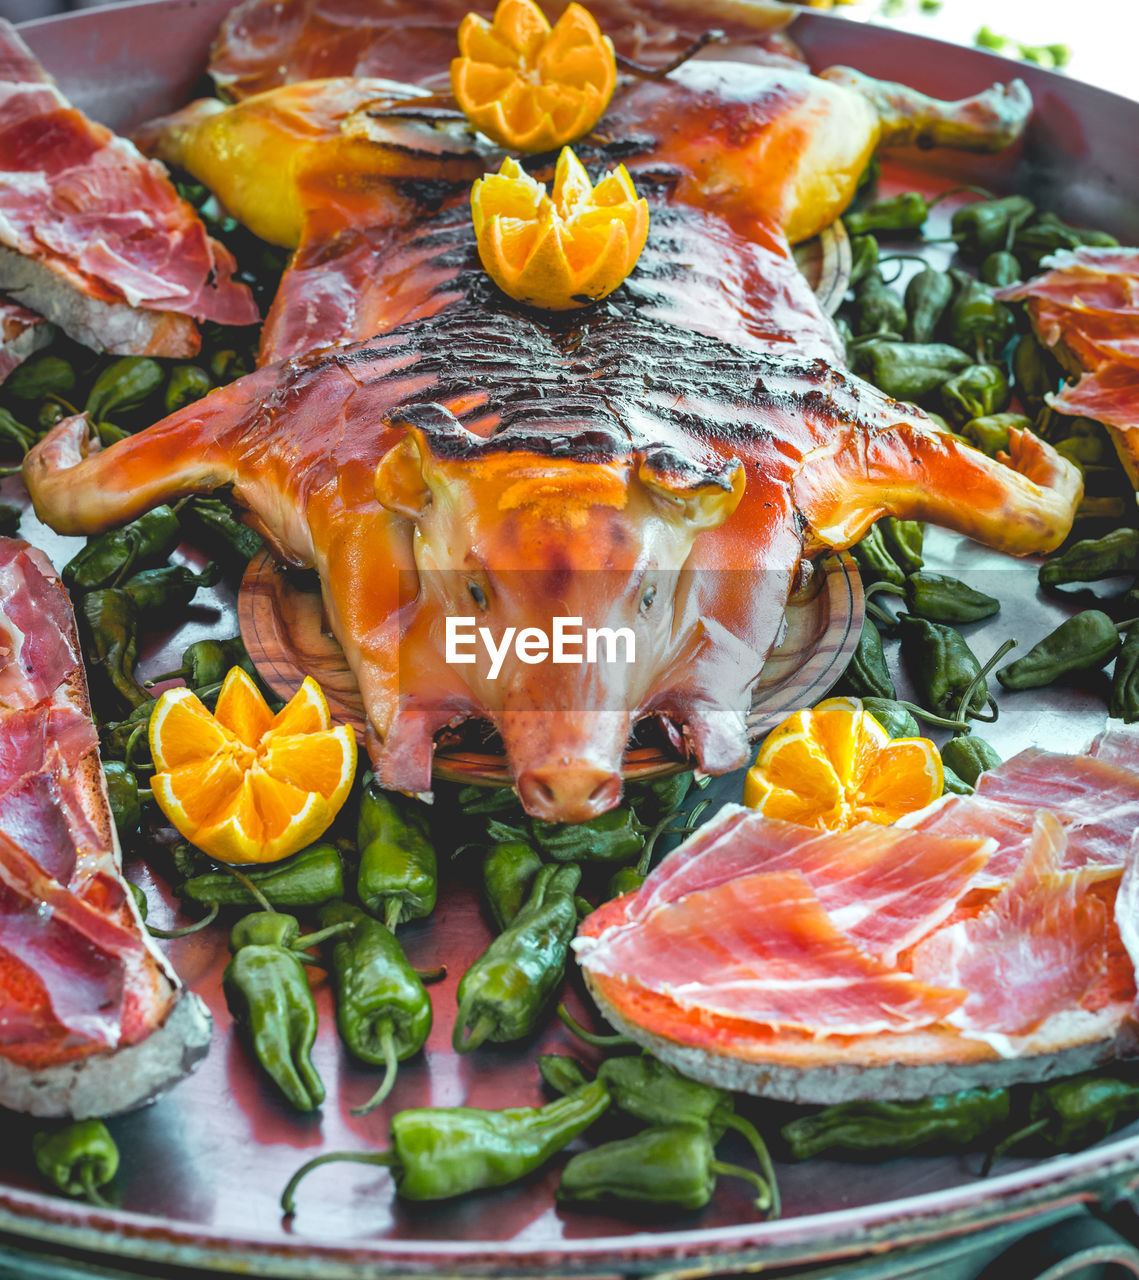 food and drink, food, healthy eating, freshness, wellbeing, seafood, close-up, animal, fish, vertebrate, plate, vegetable, no people, ready-to-eat, fruit, indoors, orange color, still life, meat, slice, dinner